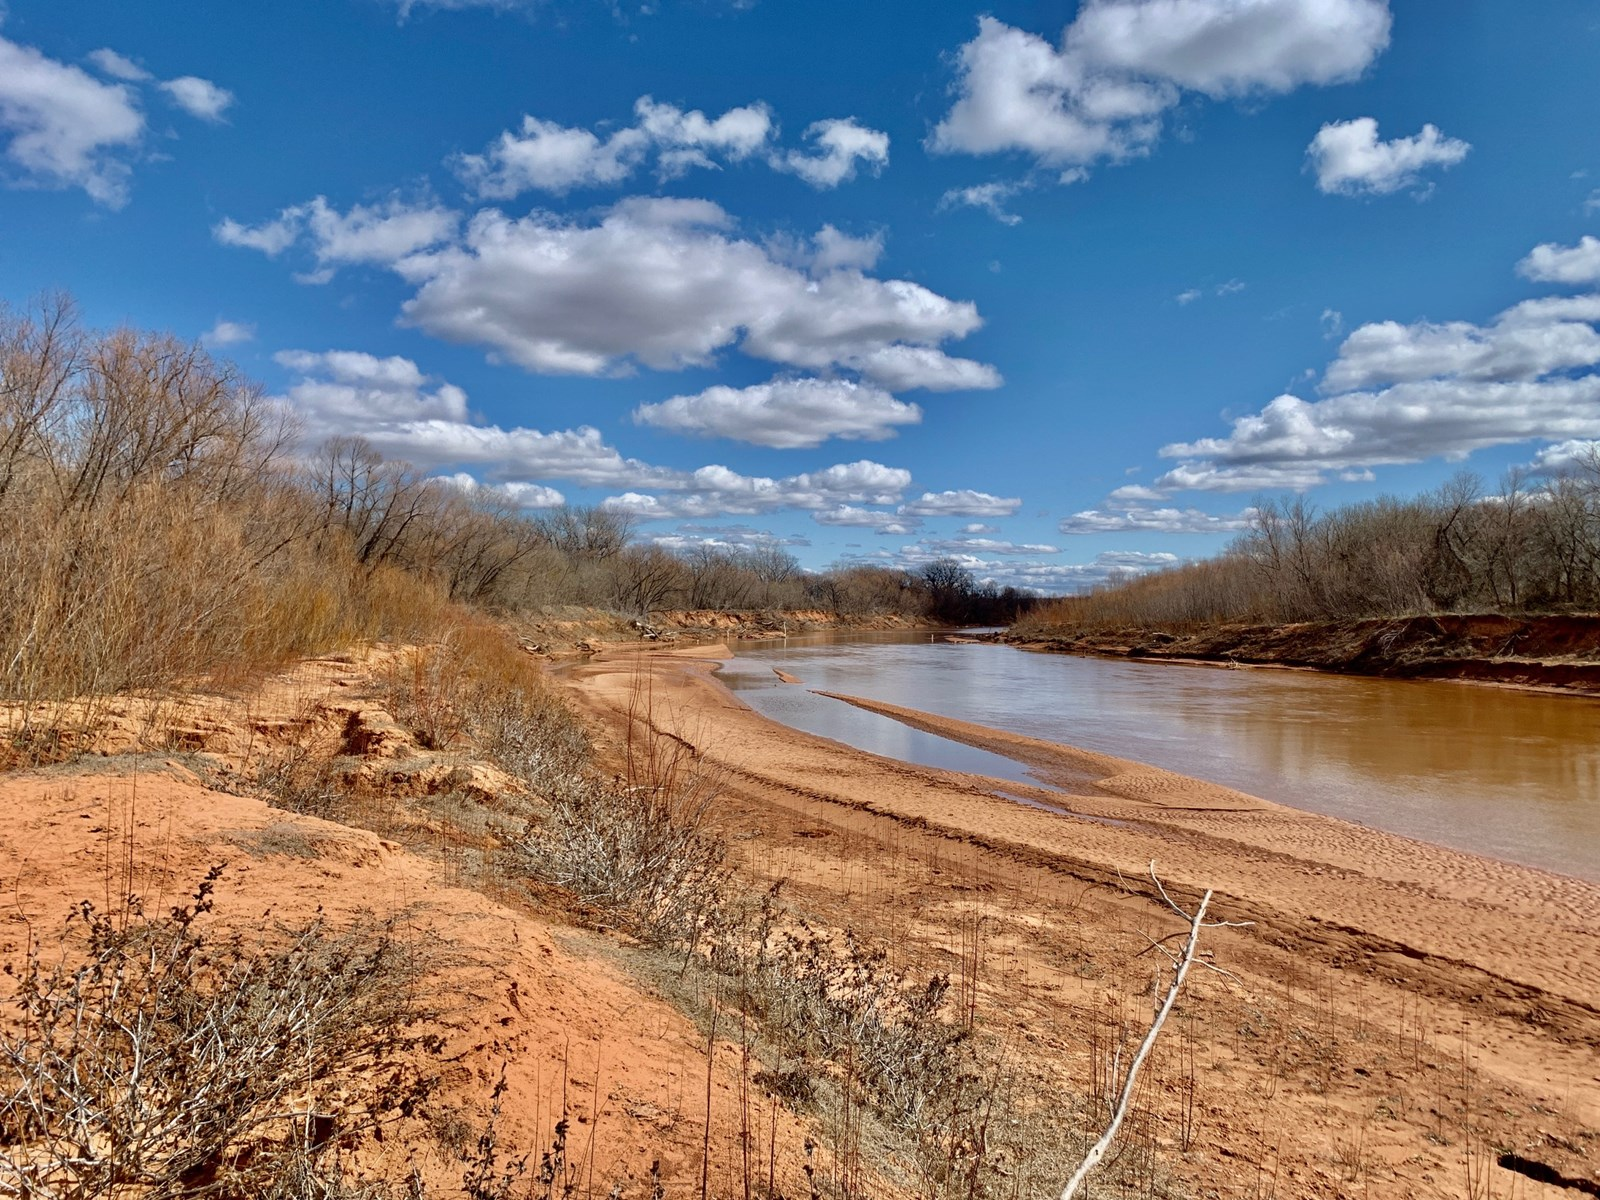 Hunting and Fishing Land on the Washita River in Garvin Co.